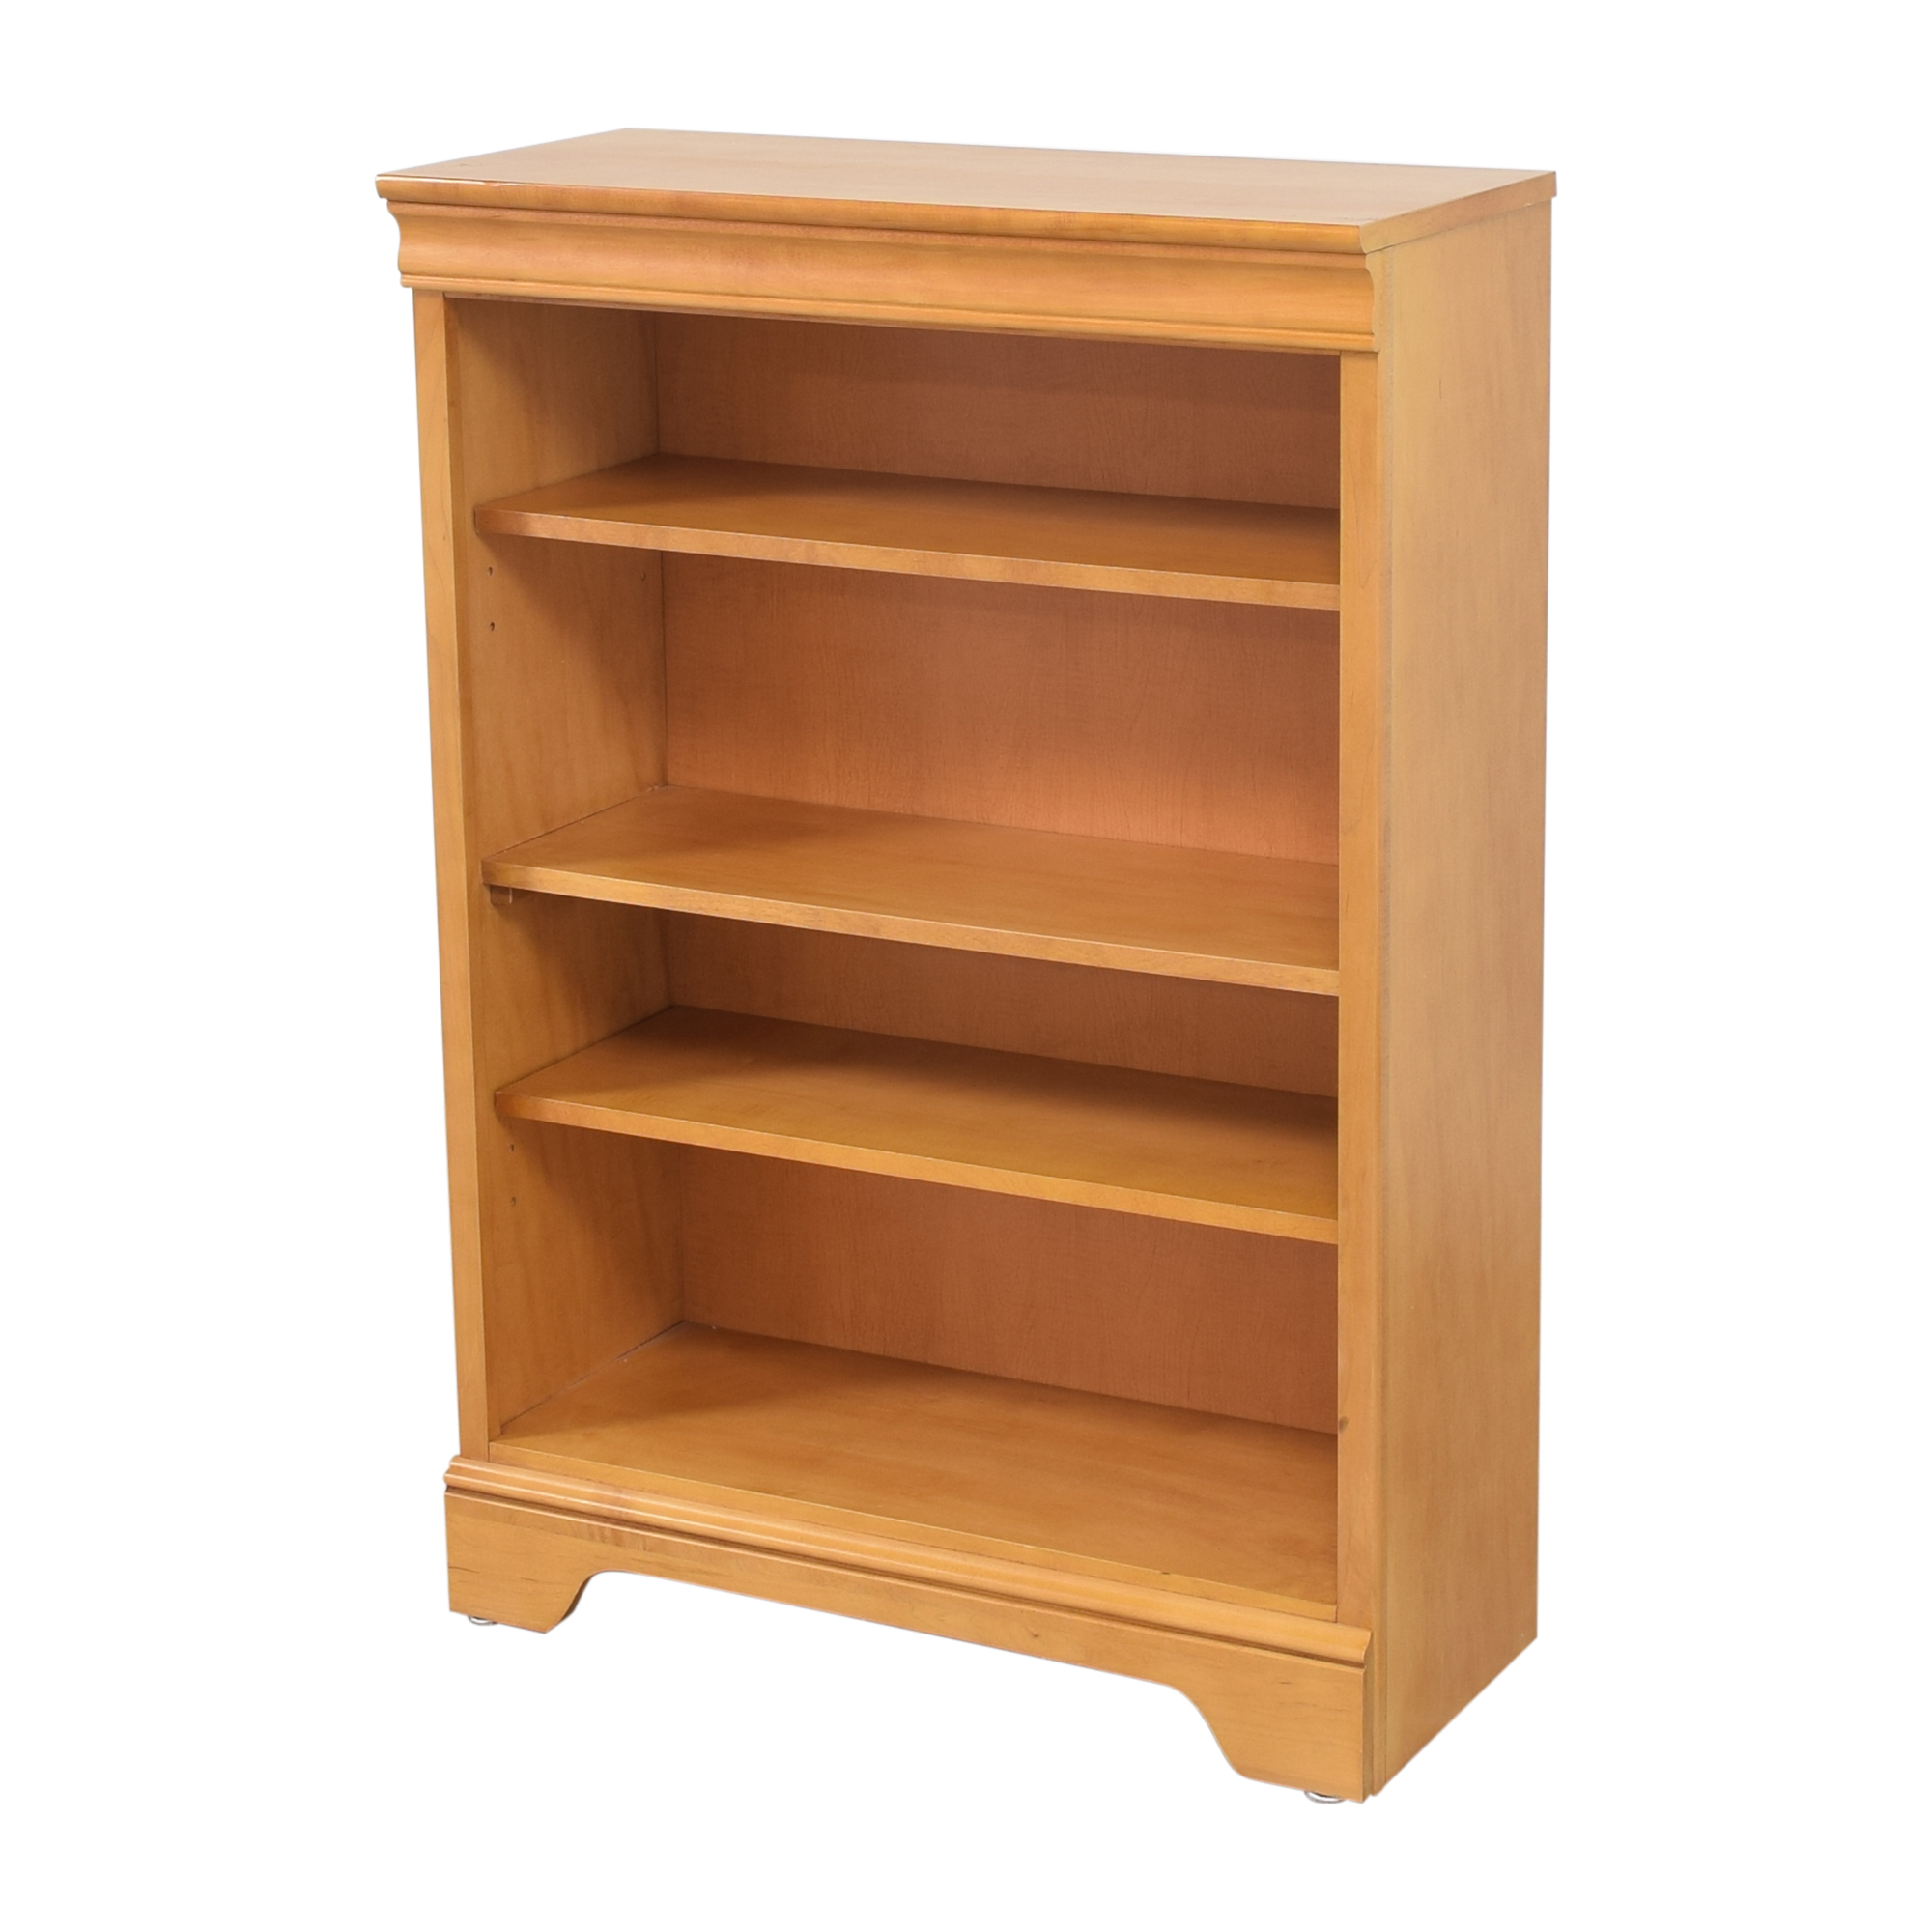 Stanley Furniture Stanley Furniture Four Shelf Bookcase used